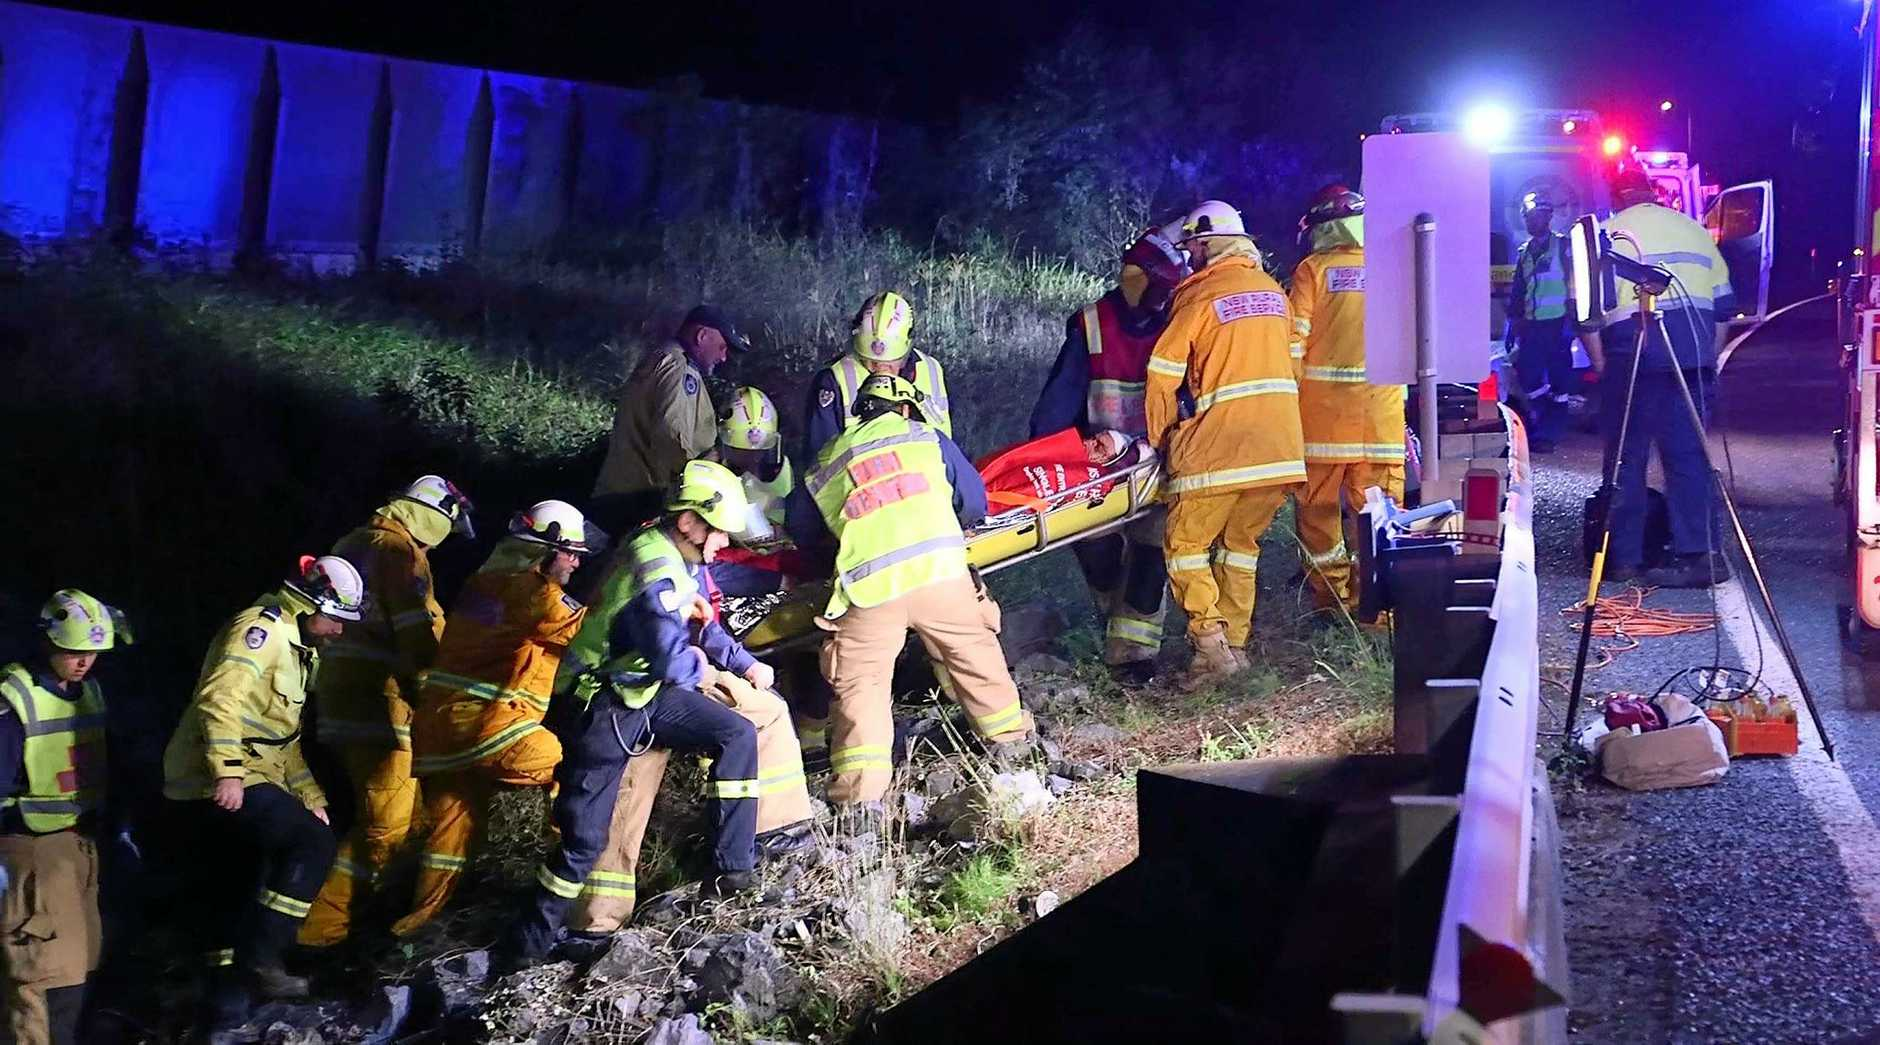 Three men were hospitalised after the Mercedes SUV they were travelling in left the Pacific Highway near Mullaway and crashed down an embankment on Monday night.